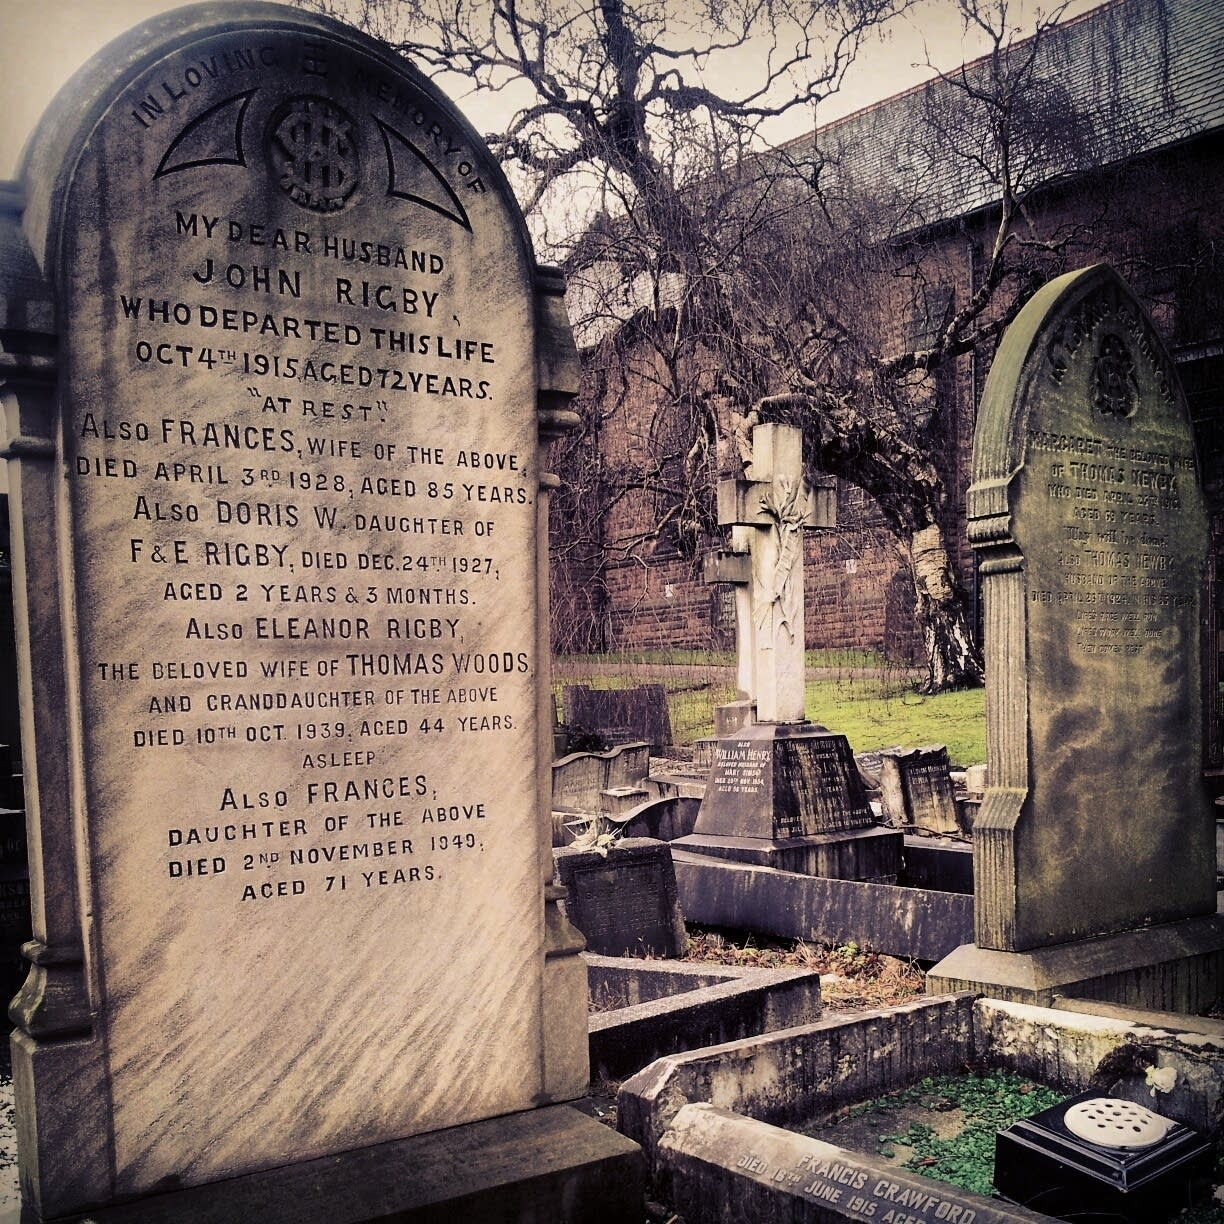 Eleanor Rigby's grave in Liverpool.